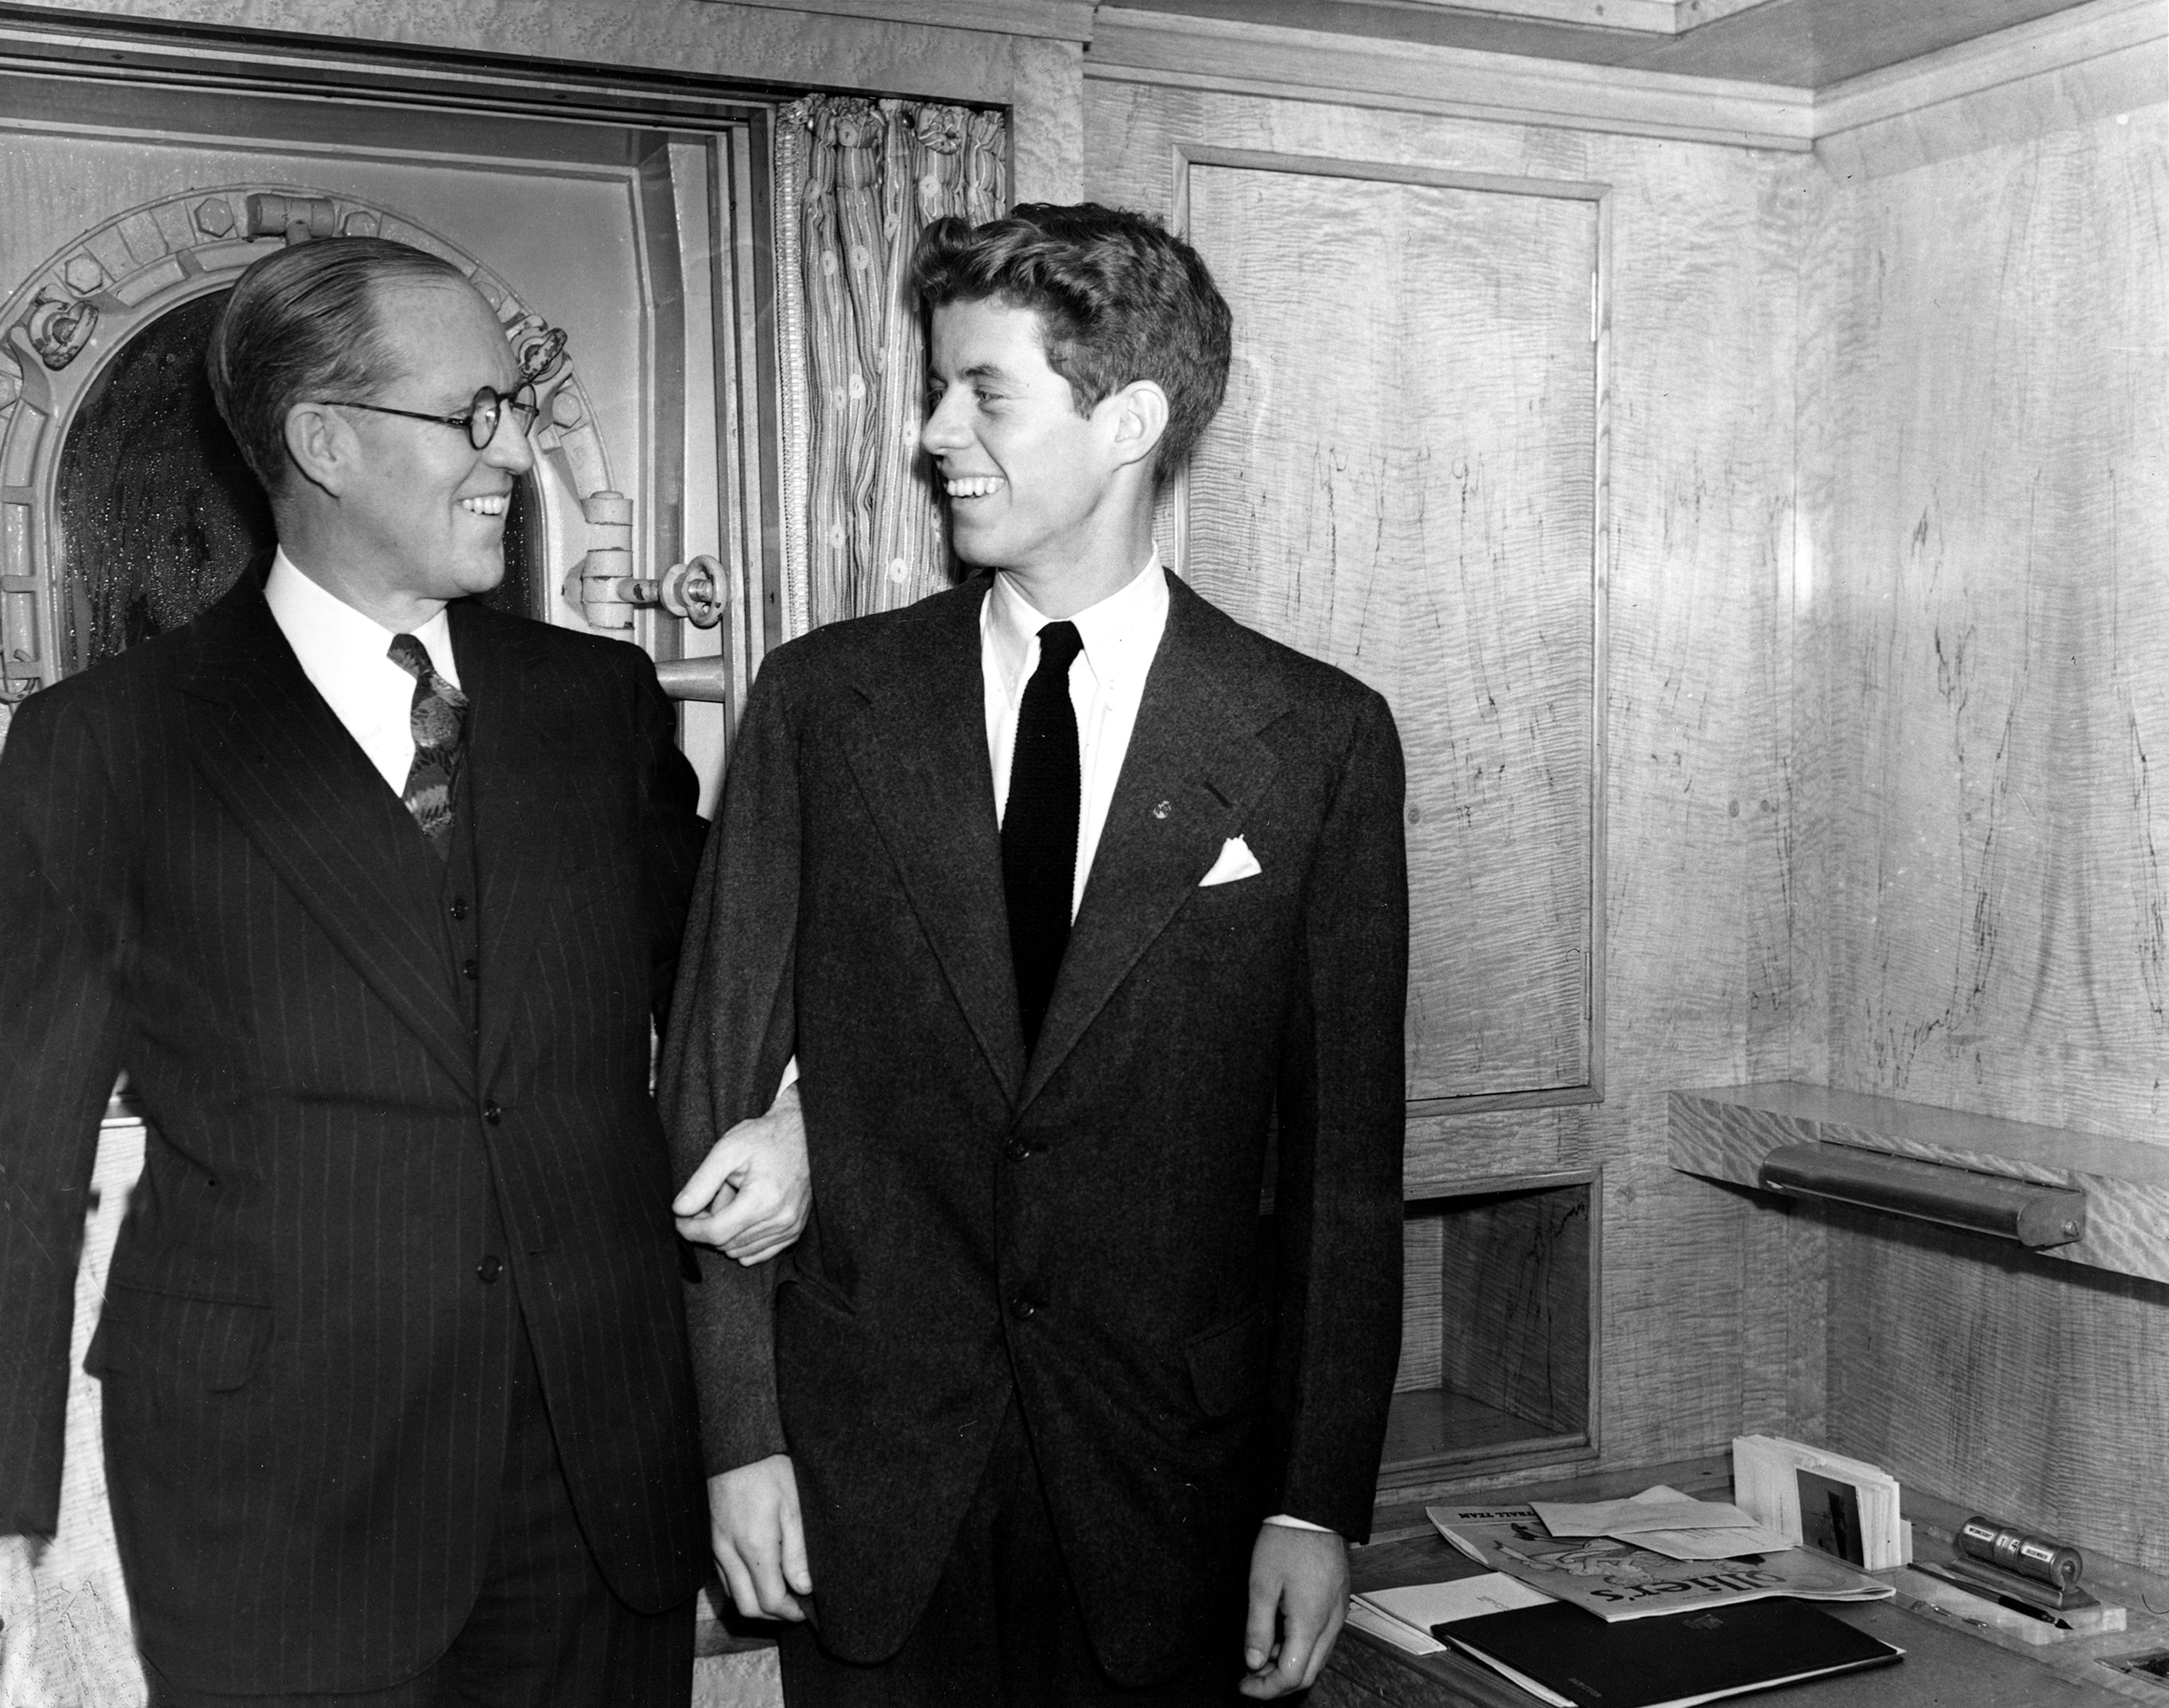 <div class='meta'><div class='origin-logo' data-origin='none'></div><span class='caption-text' data-credit='ASSOCIATED PRESS'>Joseph P. Kennedy, left, U.S. Ambassador to Great Britain, is seen with his son, John F. Kennedy, Jan. 5, 1938, in New York.</span></div>